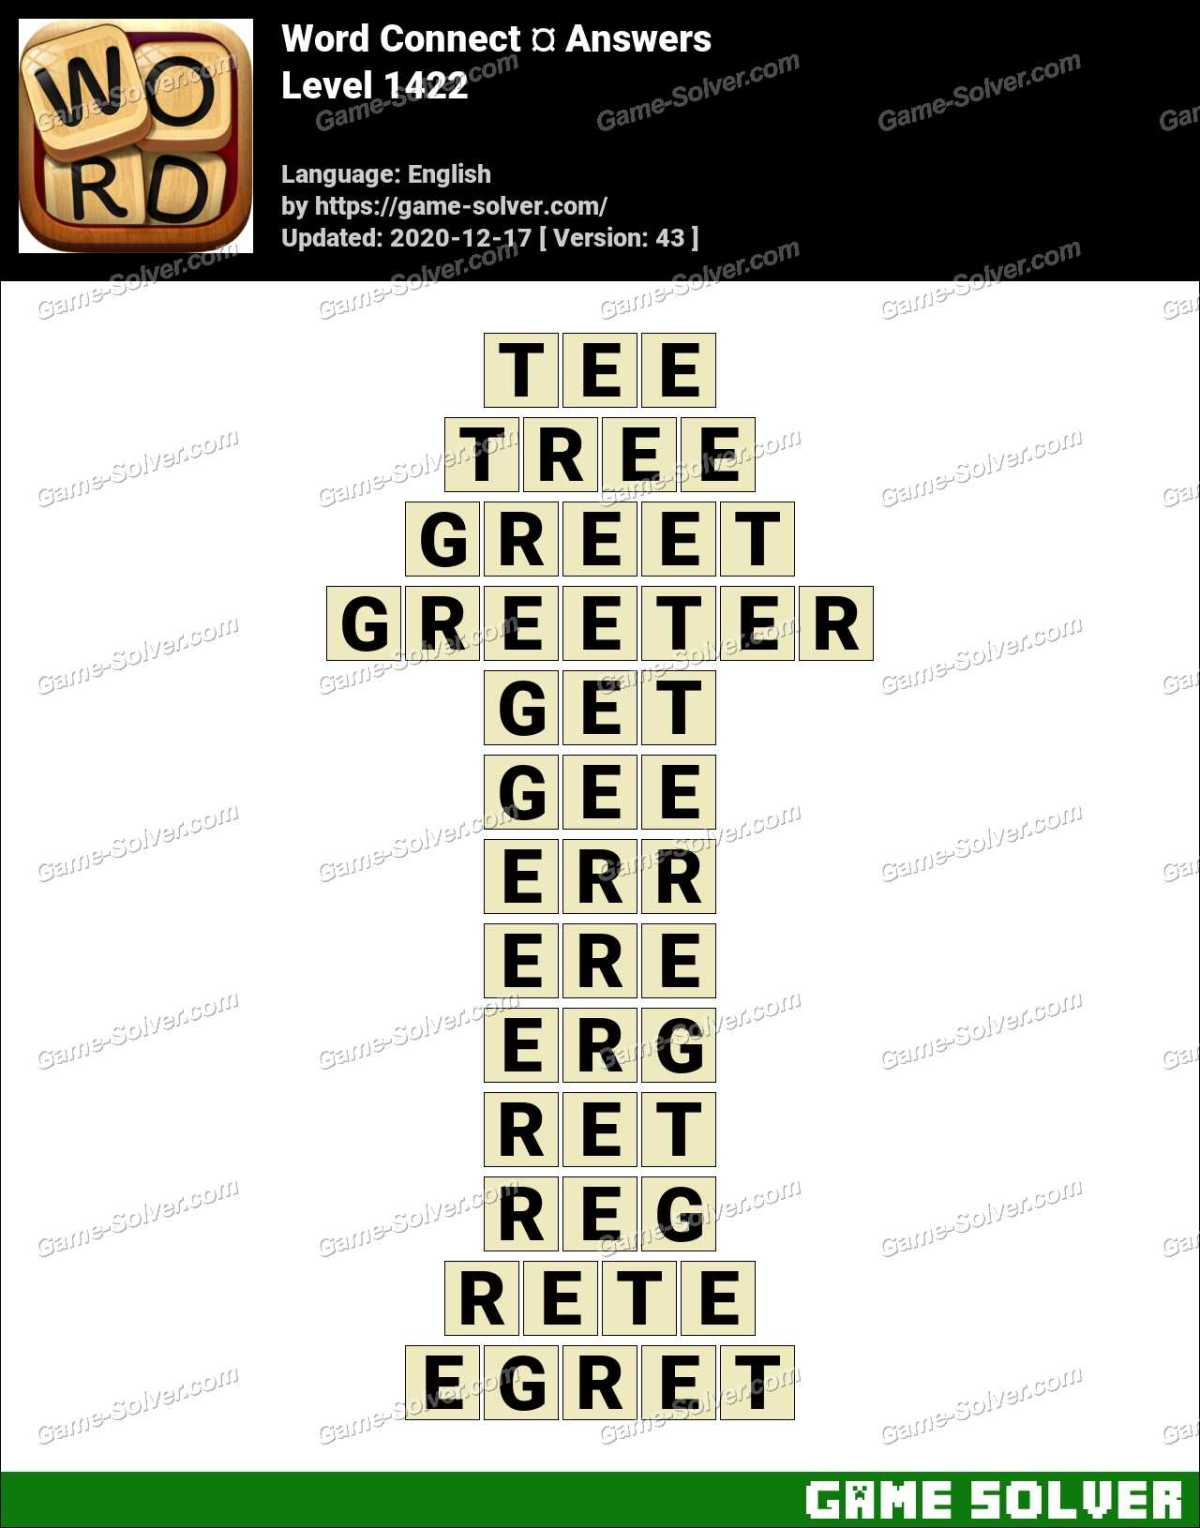 Word Connect Level 1422 Answers